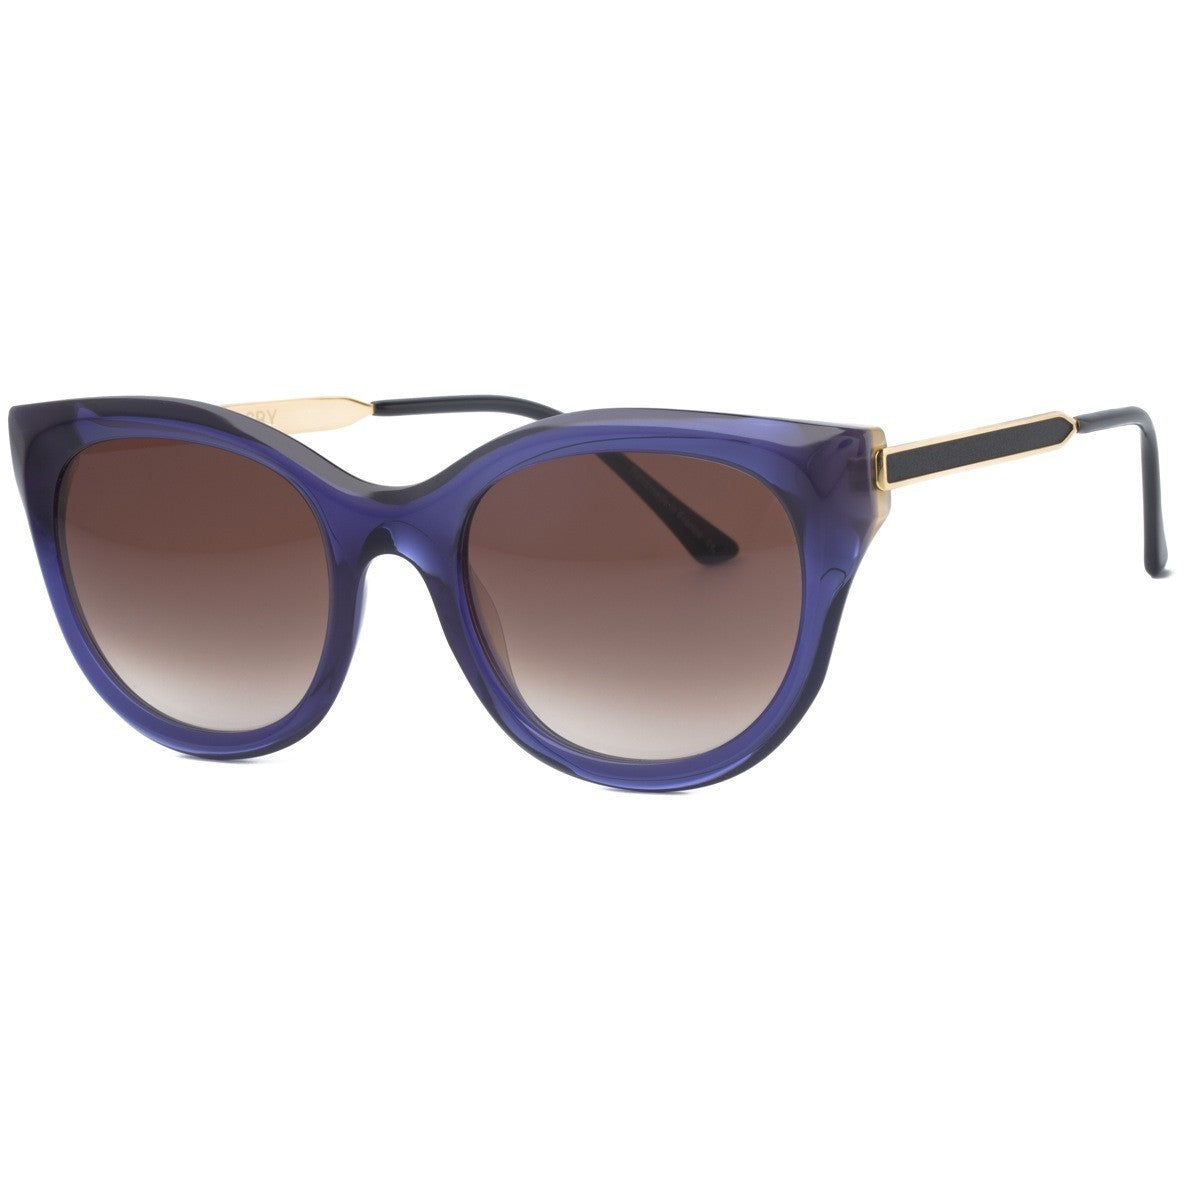 Thierry Lasry Dirtymindy